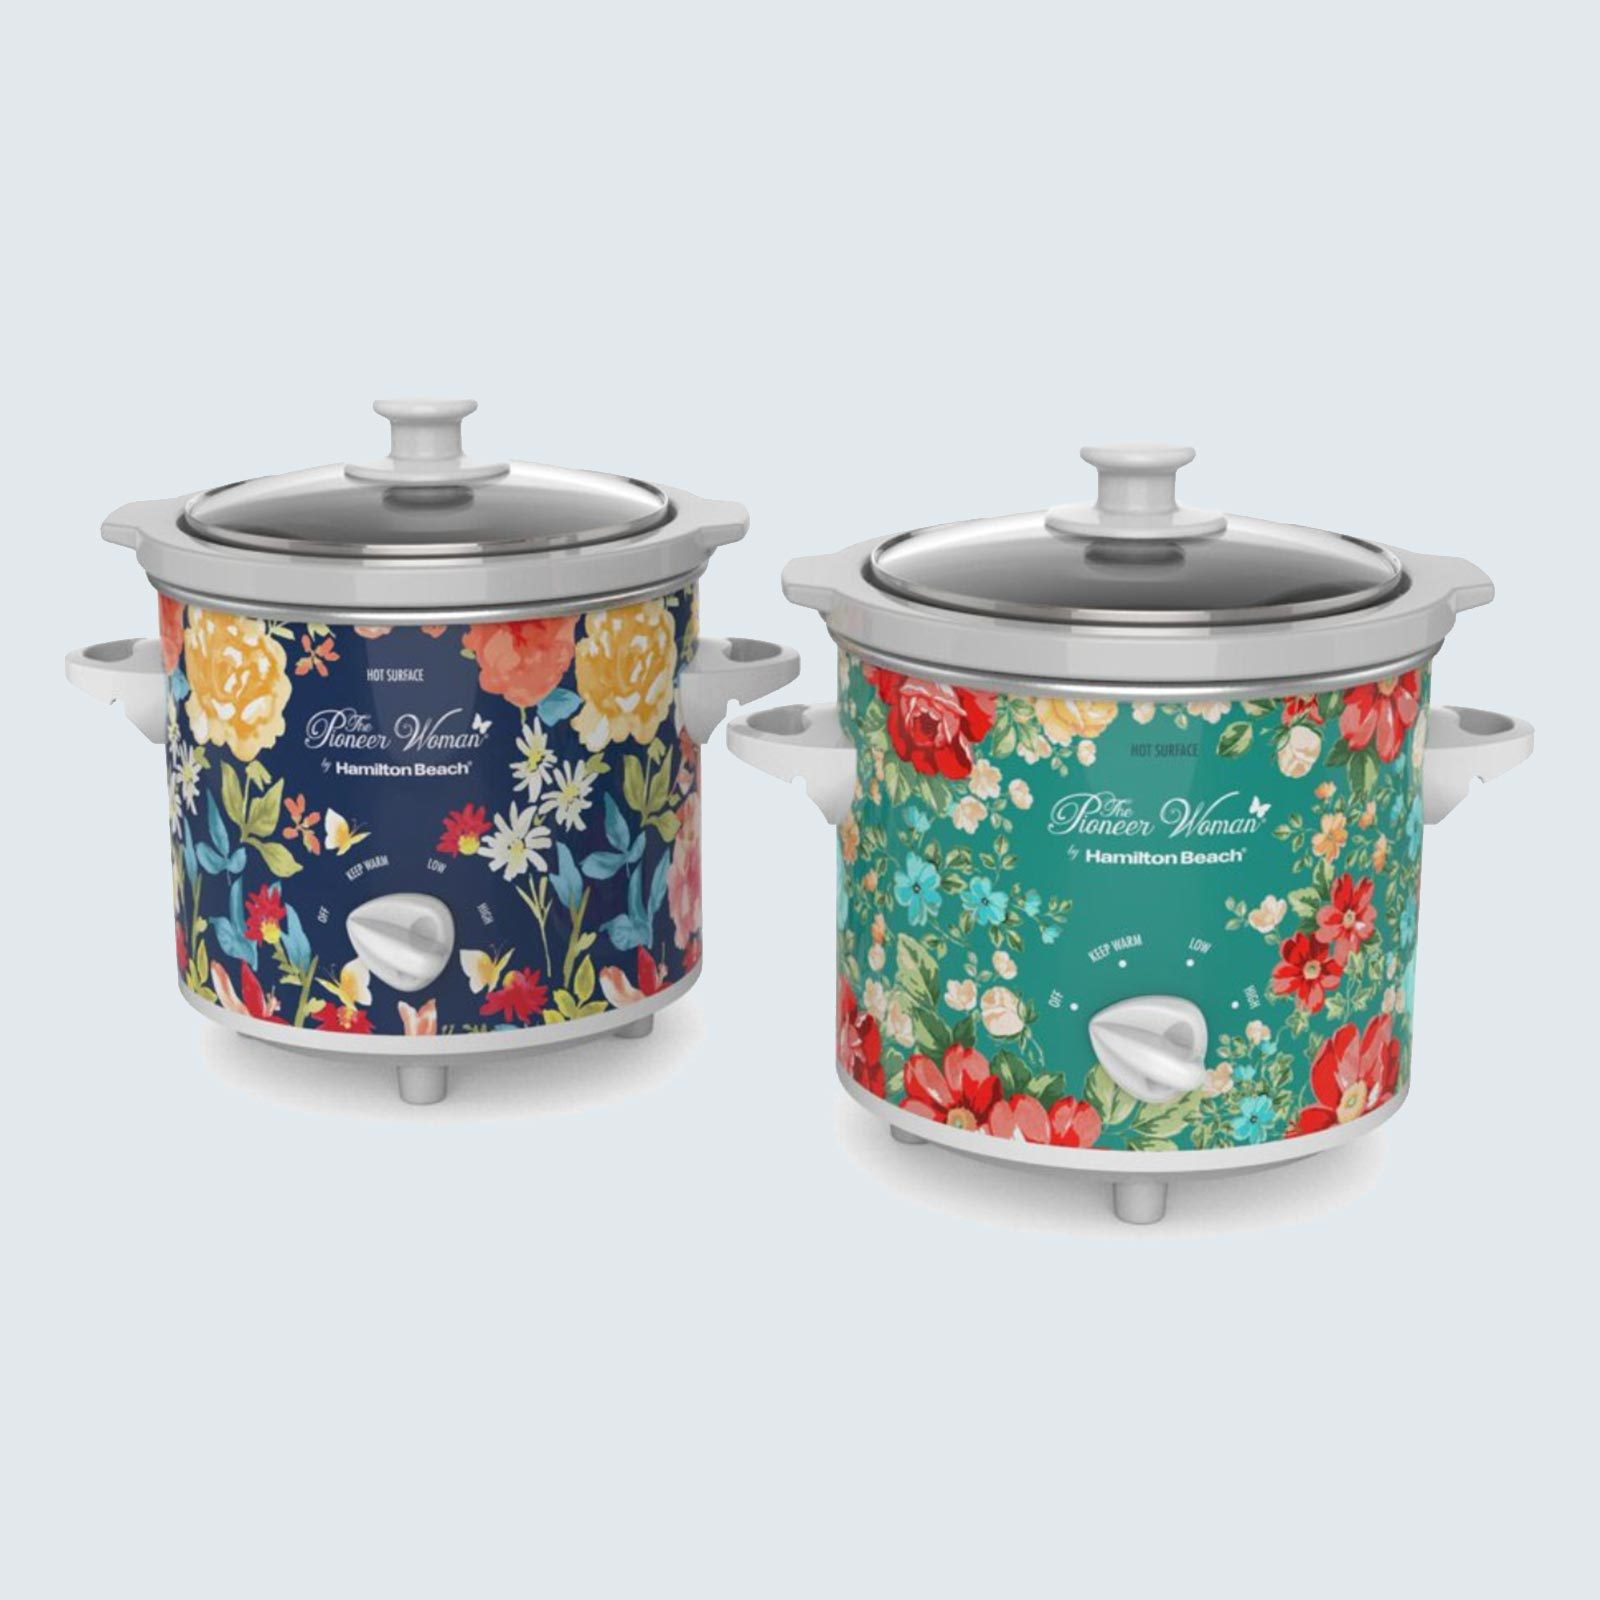 The Pioneer Woman Slow Cookers, set of 2